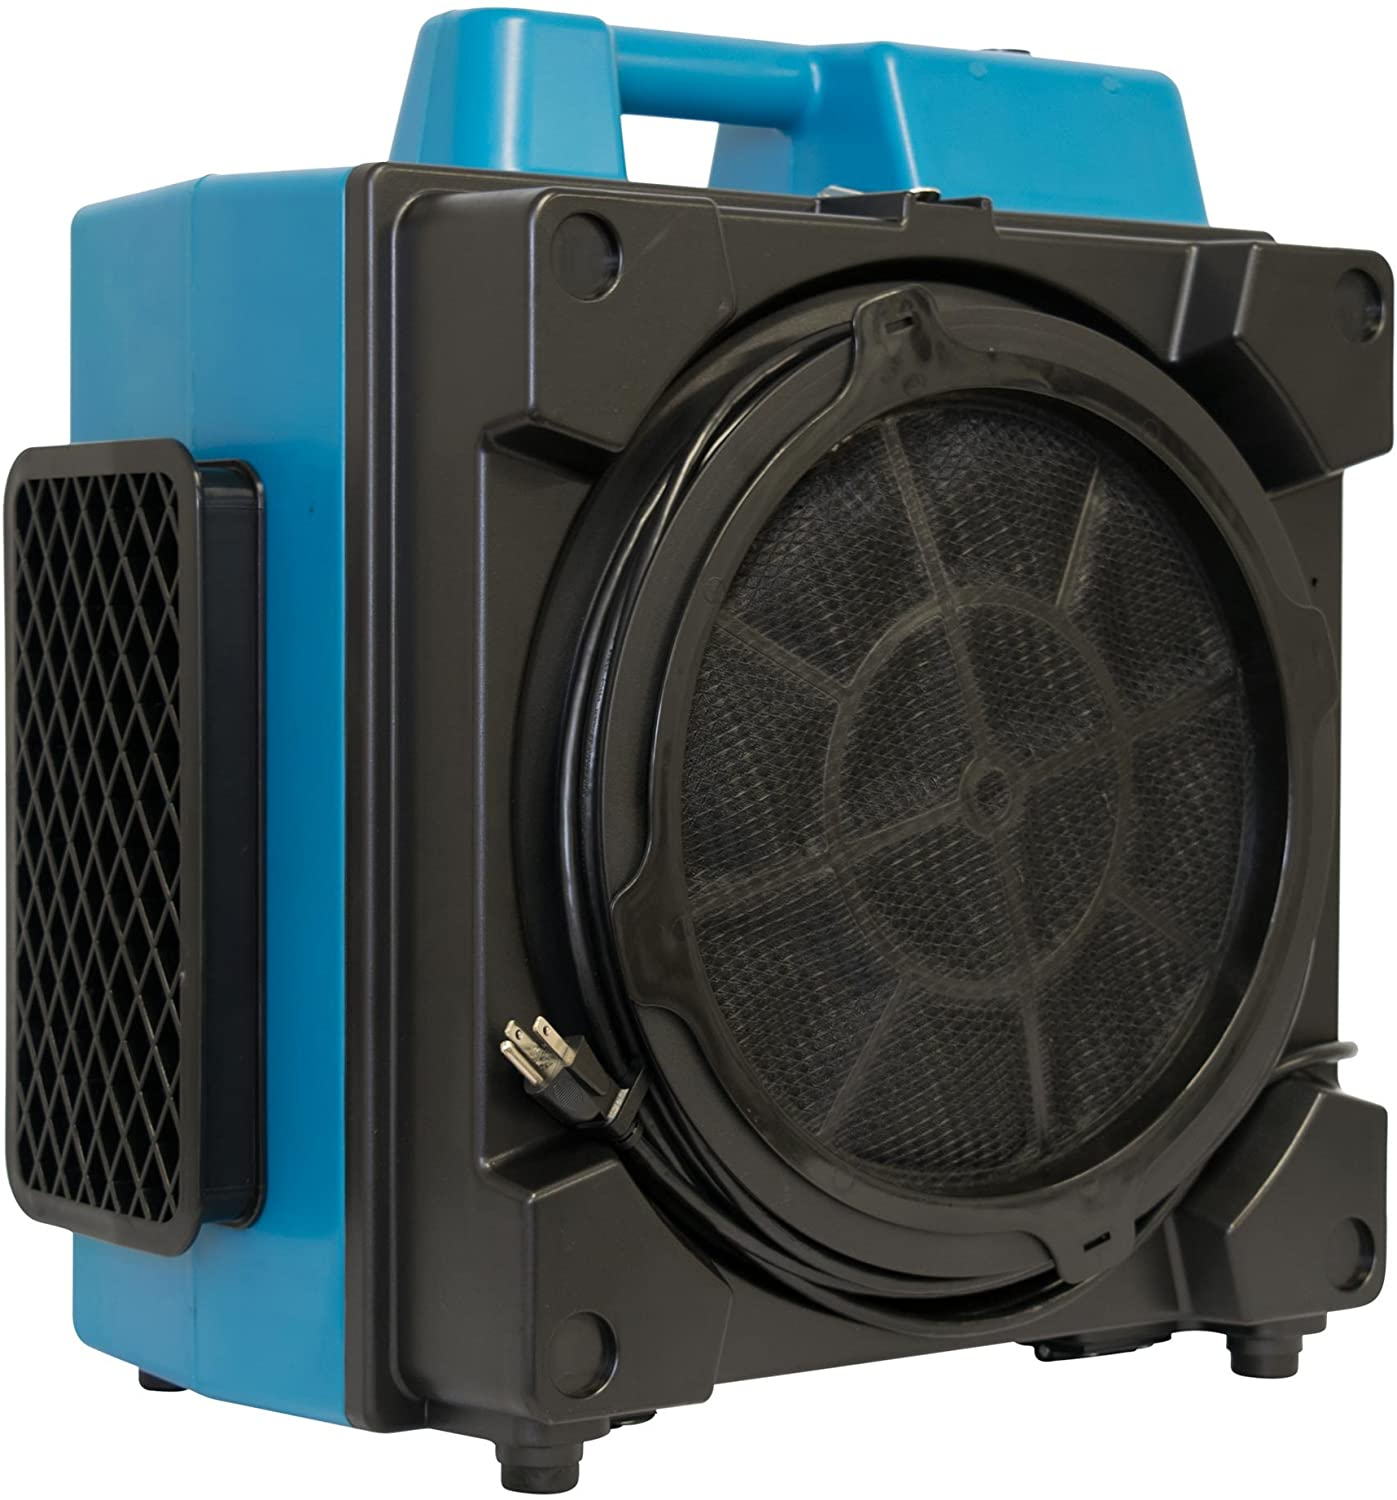 XPOWER X-3580 Professional 4 Stage Air Scrubber